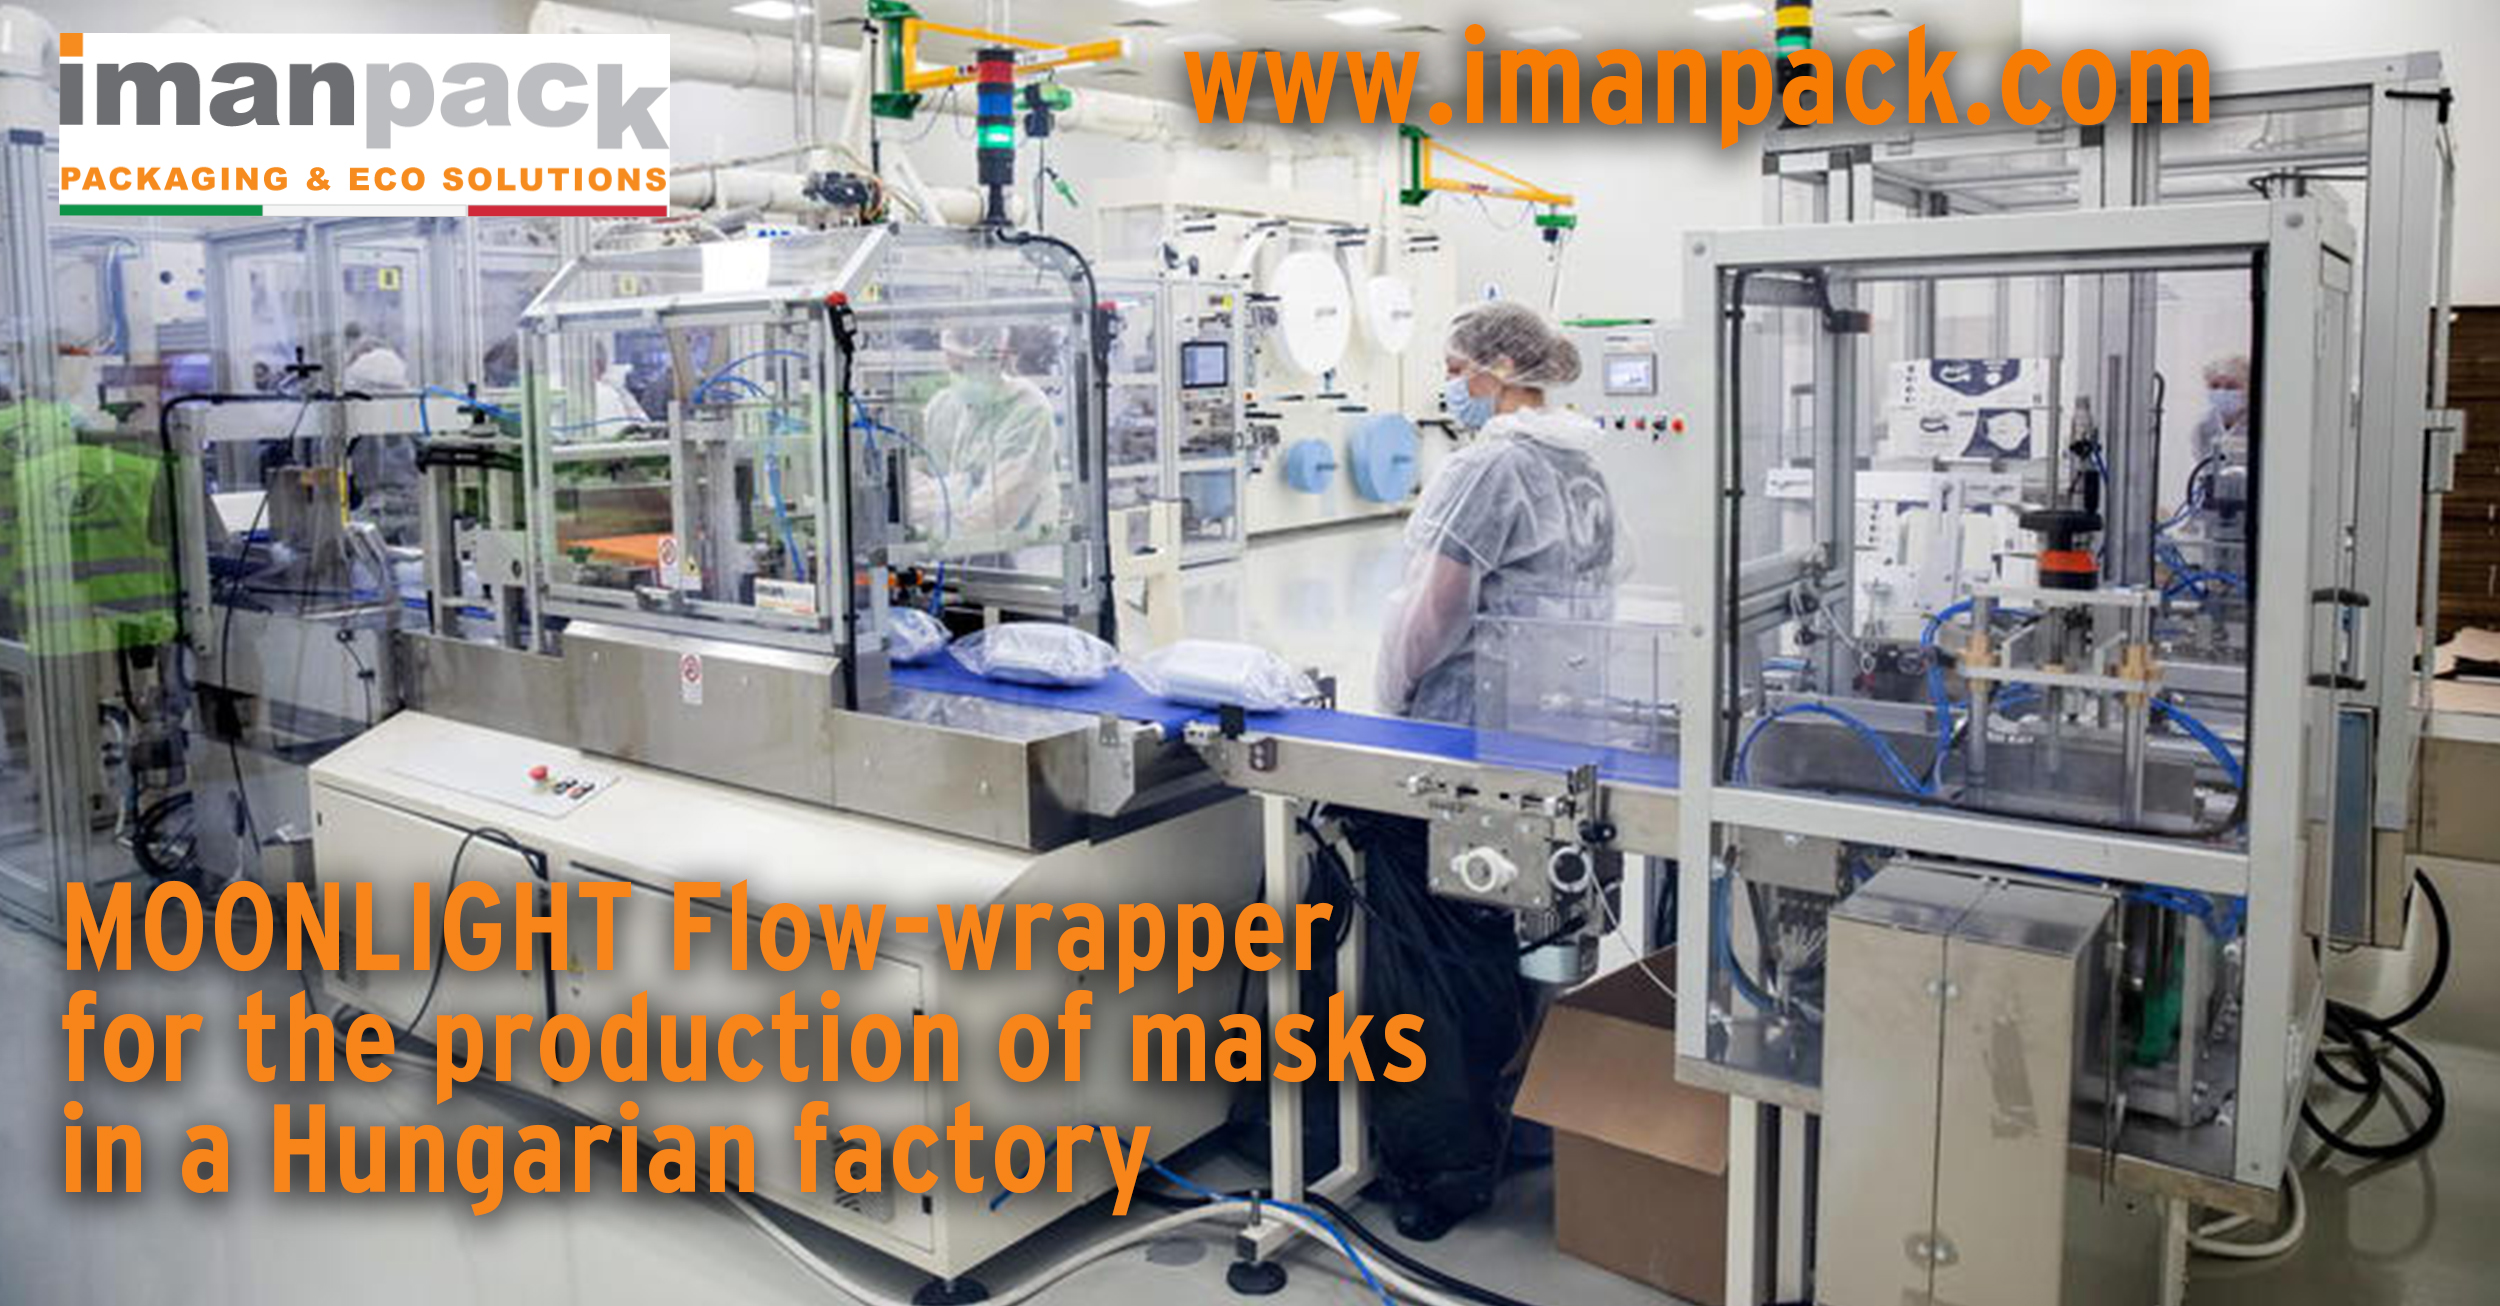 ASSOCIATED NATIONAL PRESS AGENCY - ANSA - talks about Imanpack packaging machines